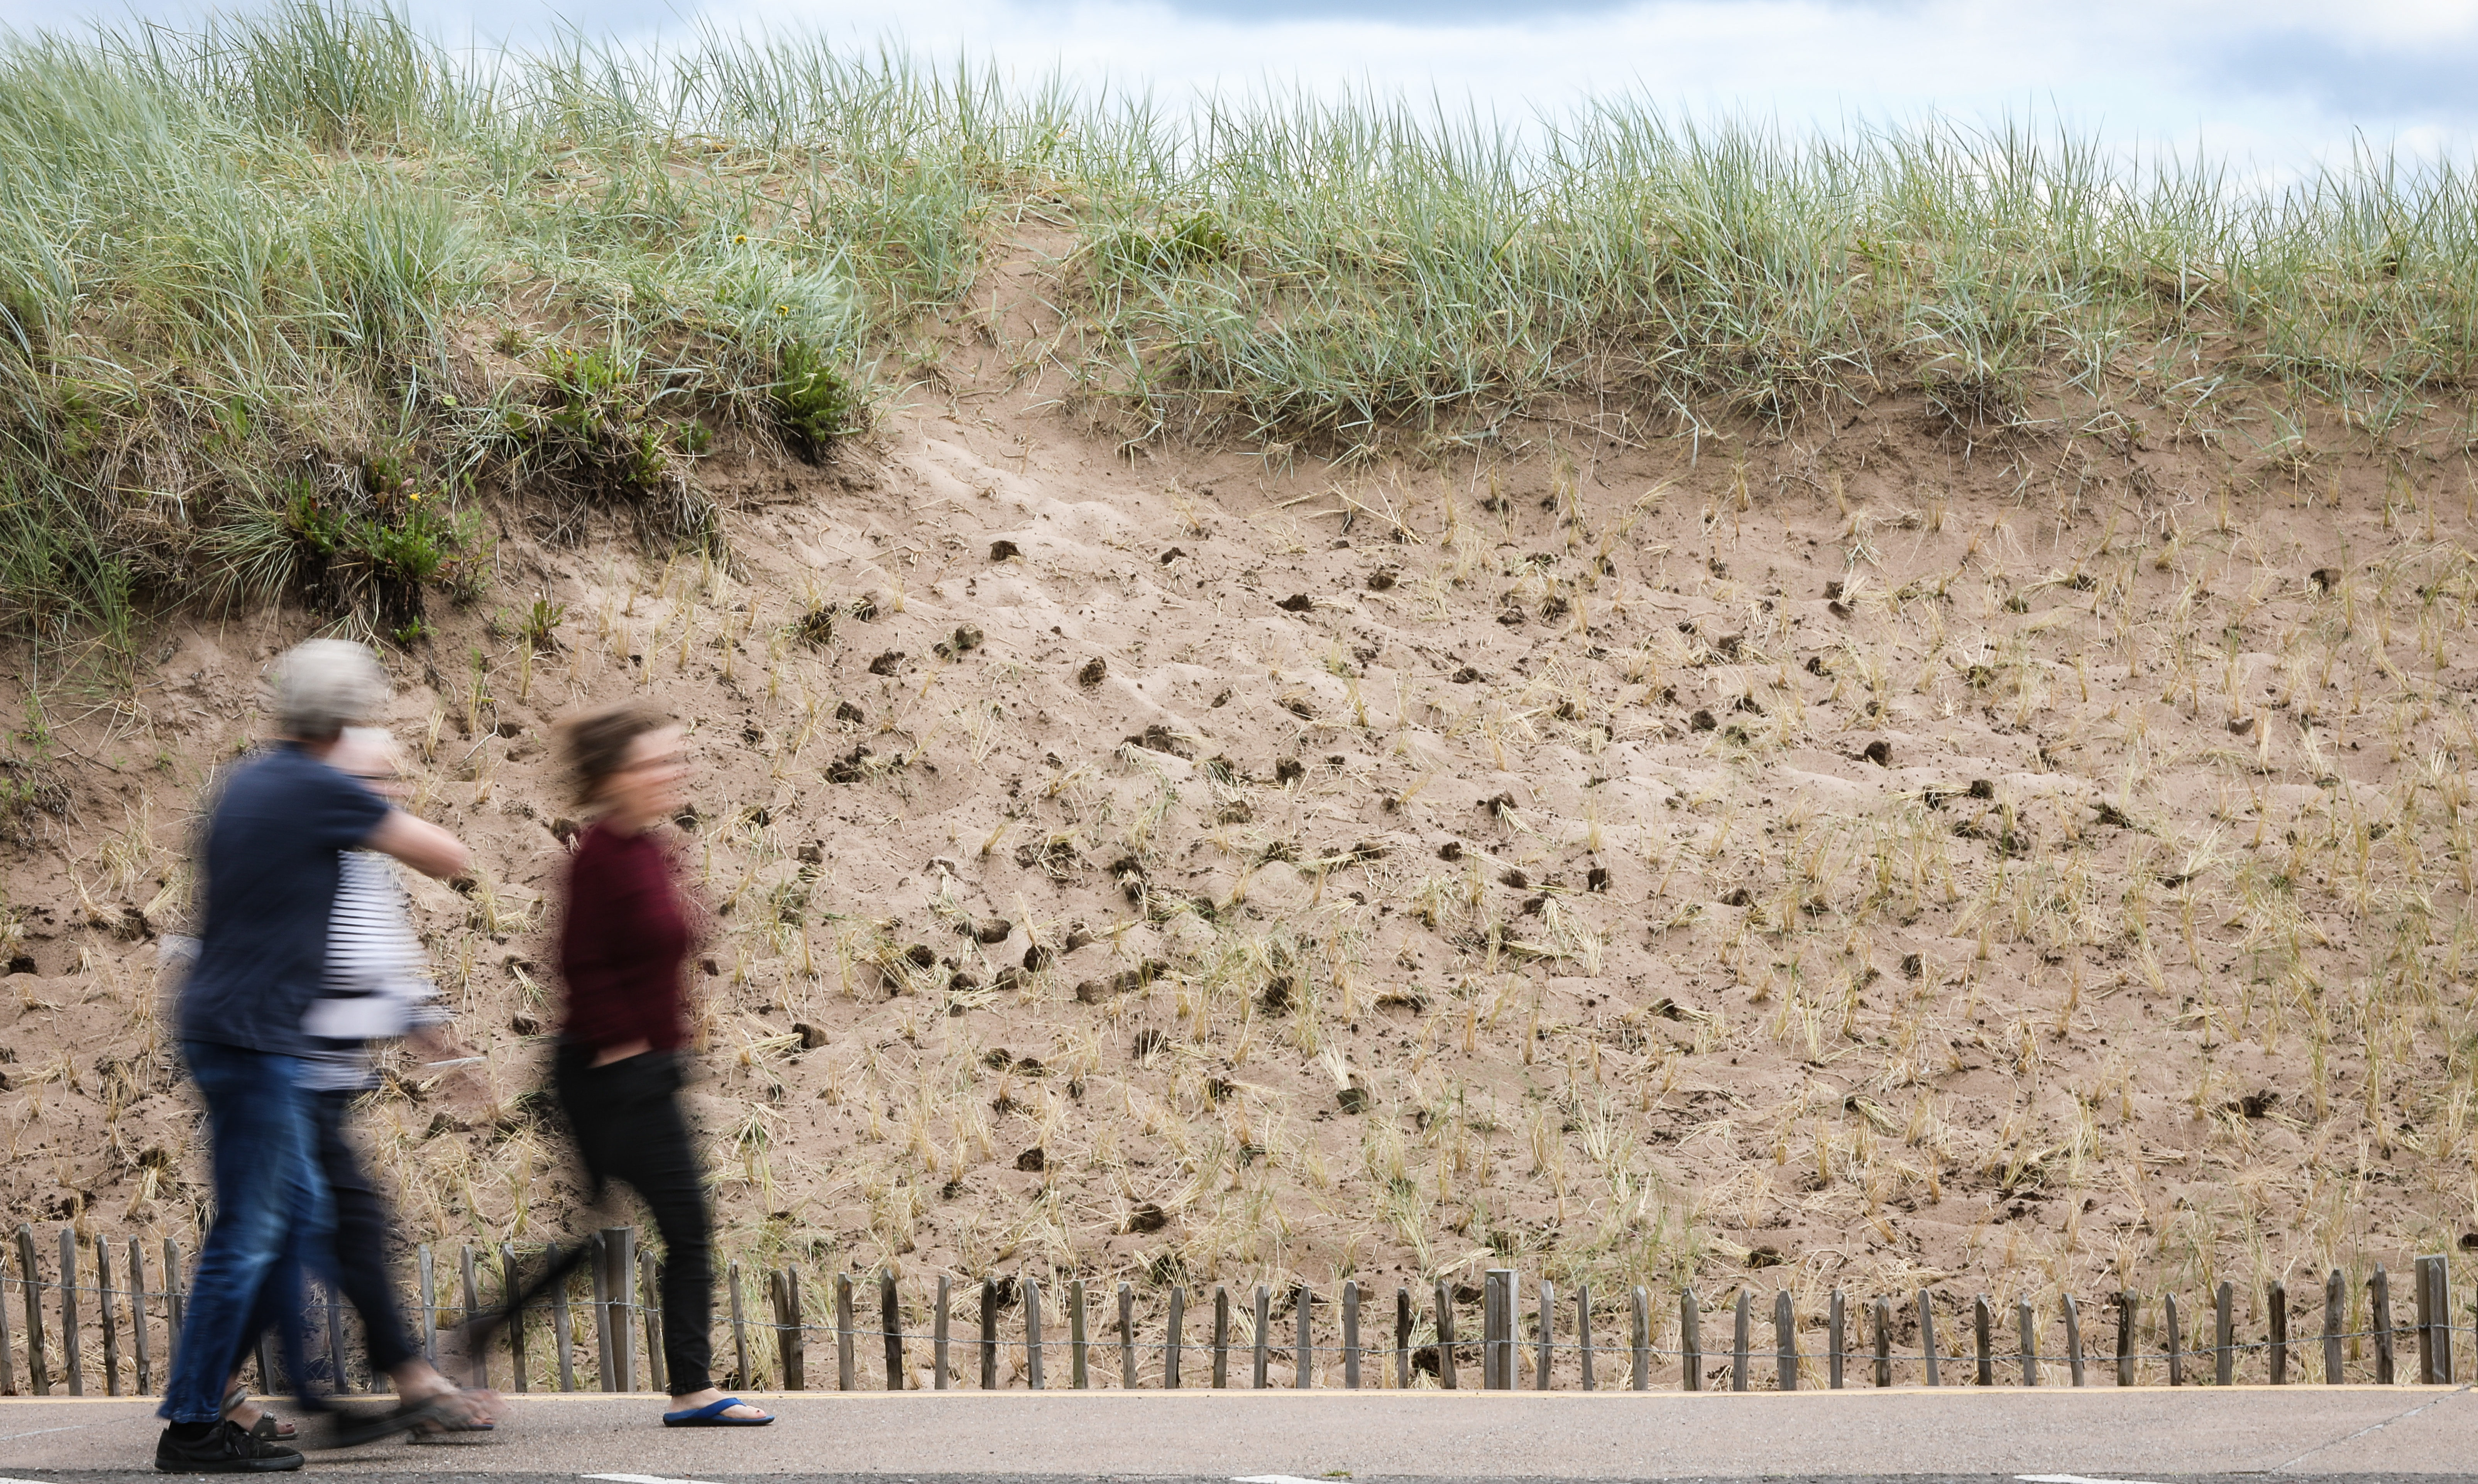 Vandals have uprooted marram grass planted to stabalise sand dunes in Broughty Ferry.